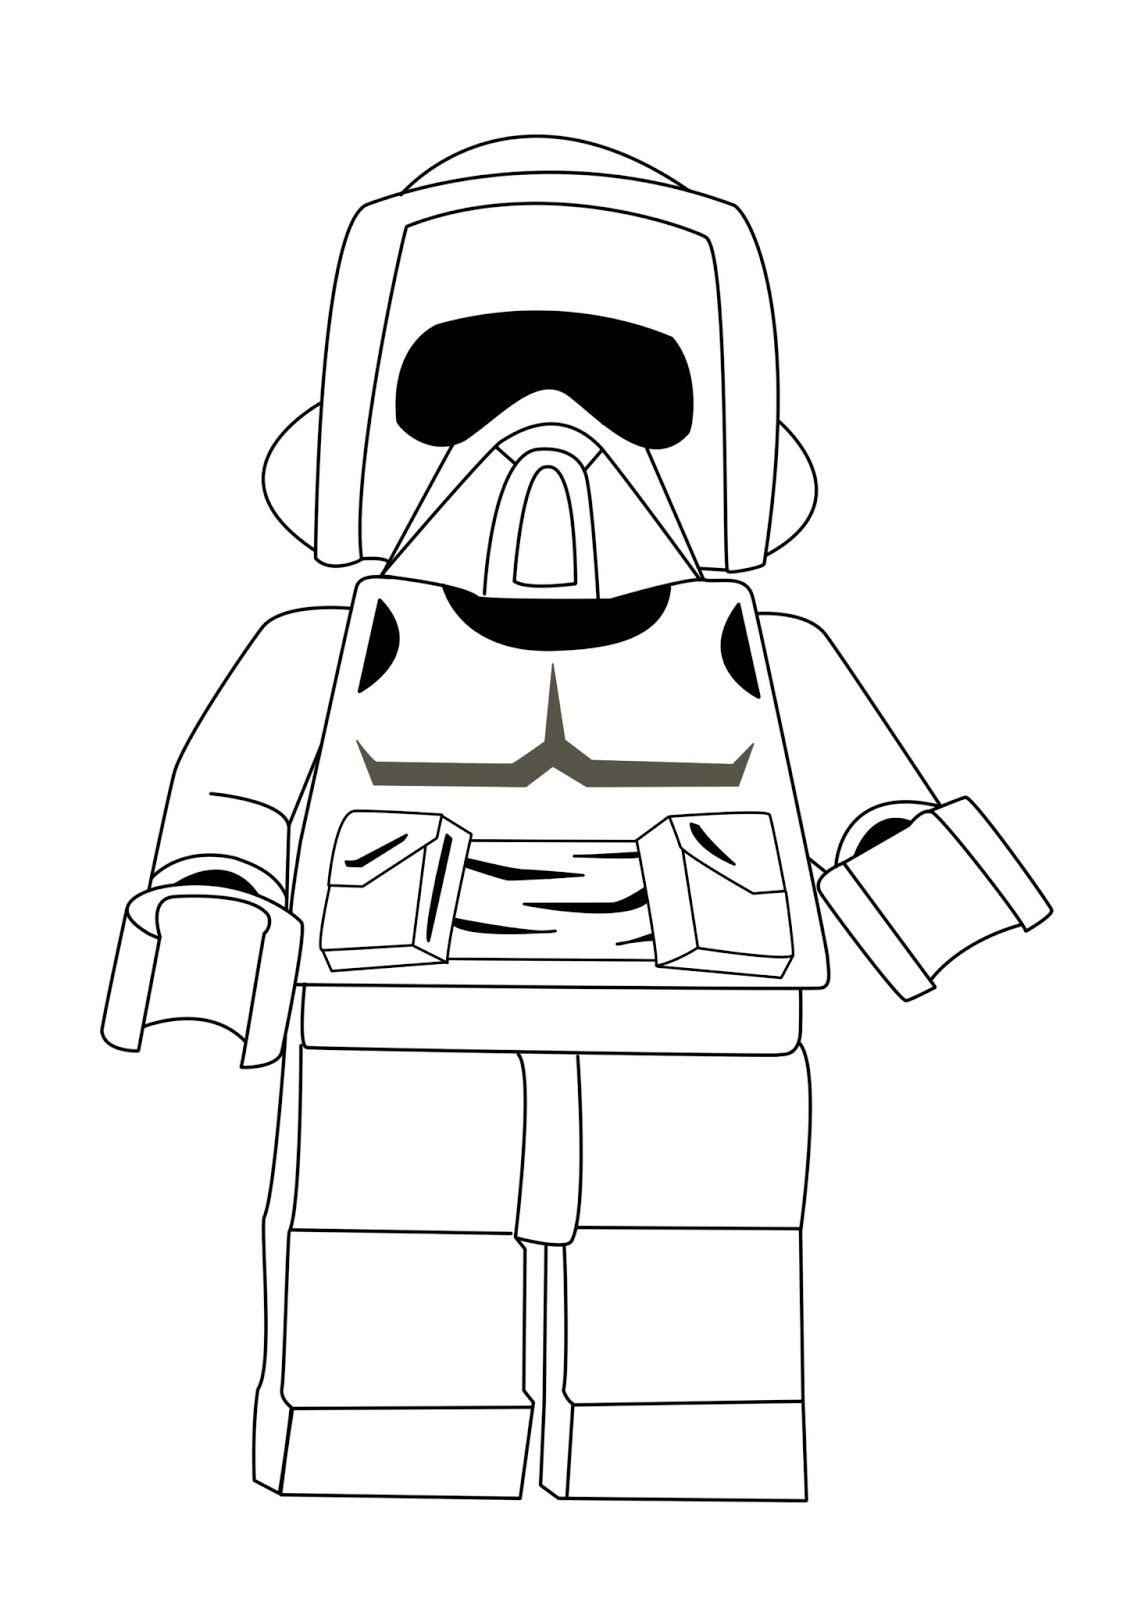 Lego Star Wars Coloring Pages Best Coloring Pages For Kids Lego Coloring Pages Star Wars Colors Star Wars Coloring Book